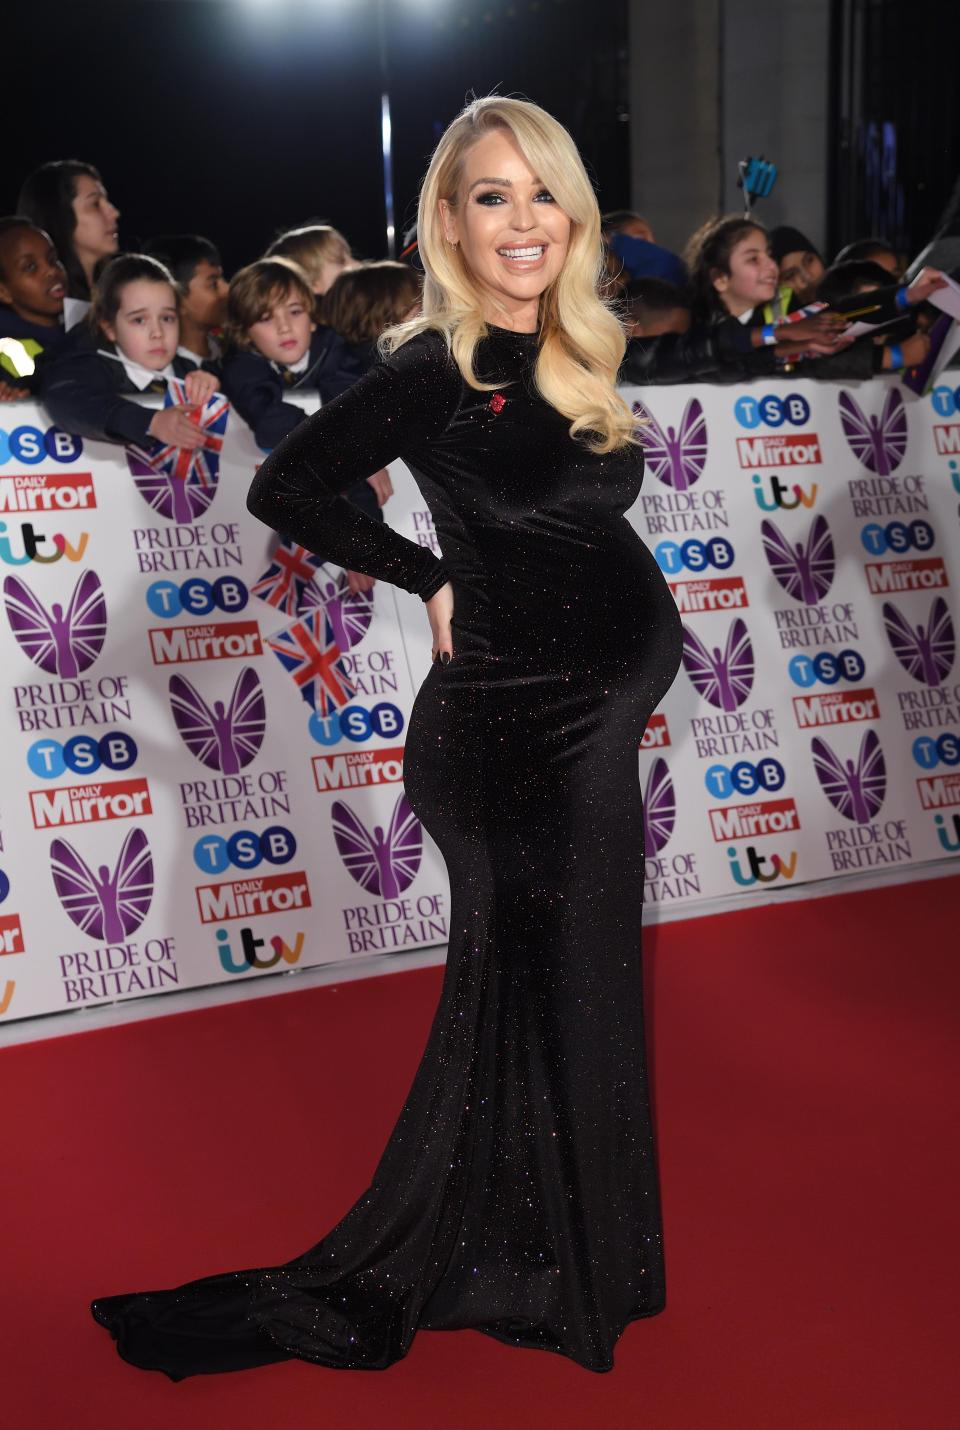 Katie shows off her baby bump at the Pride of Britain Awards